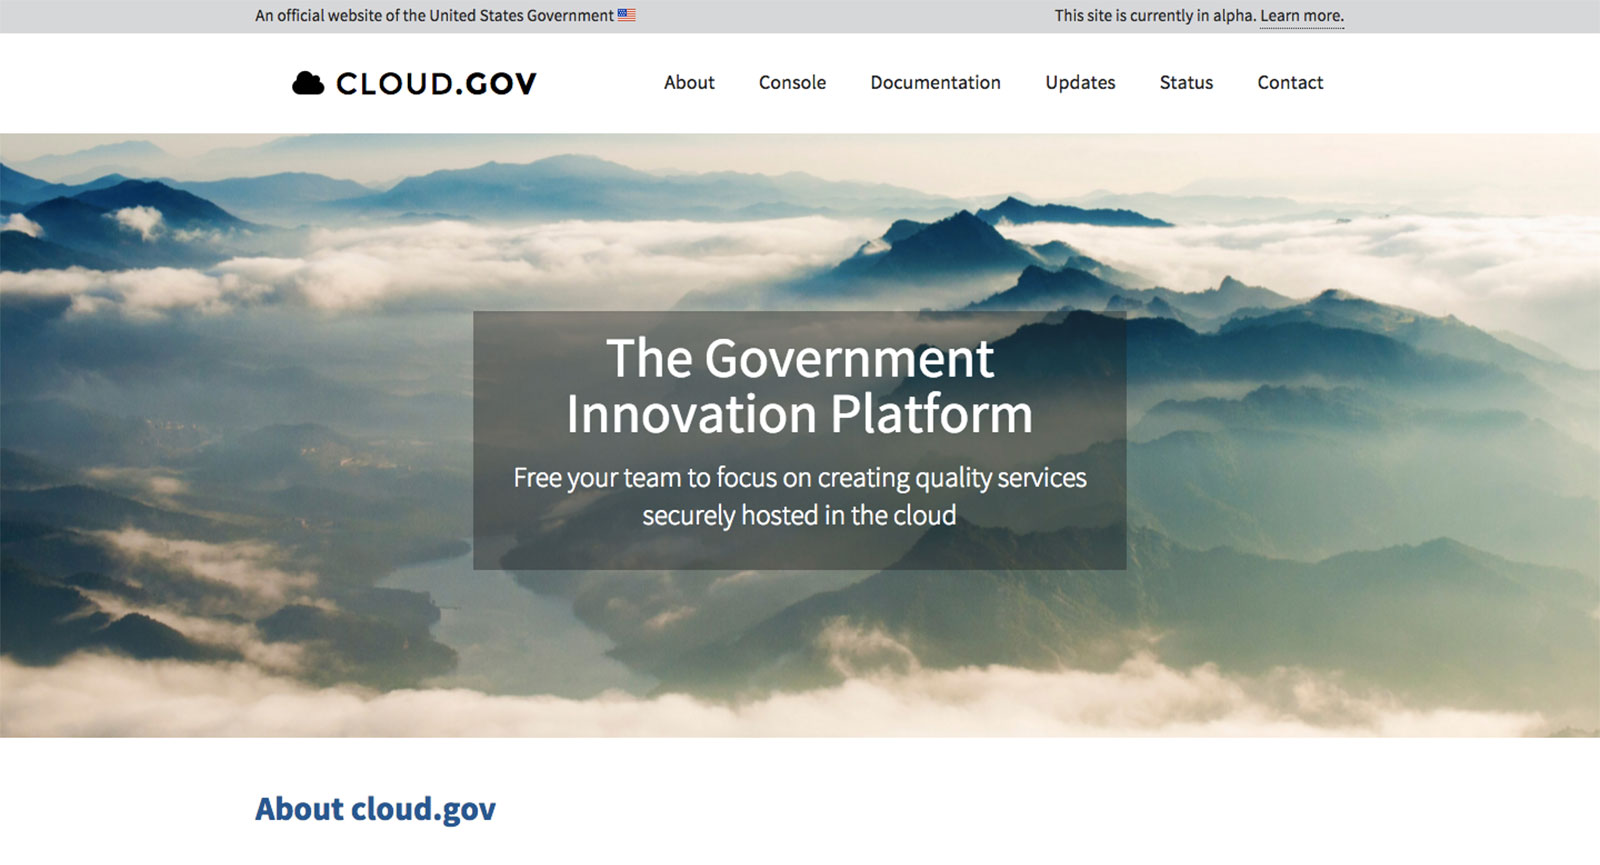 The cloud.gov homepage